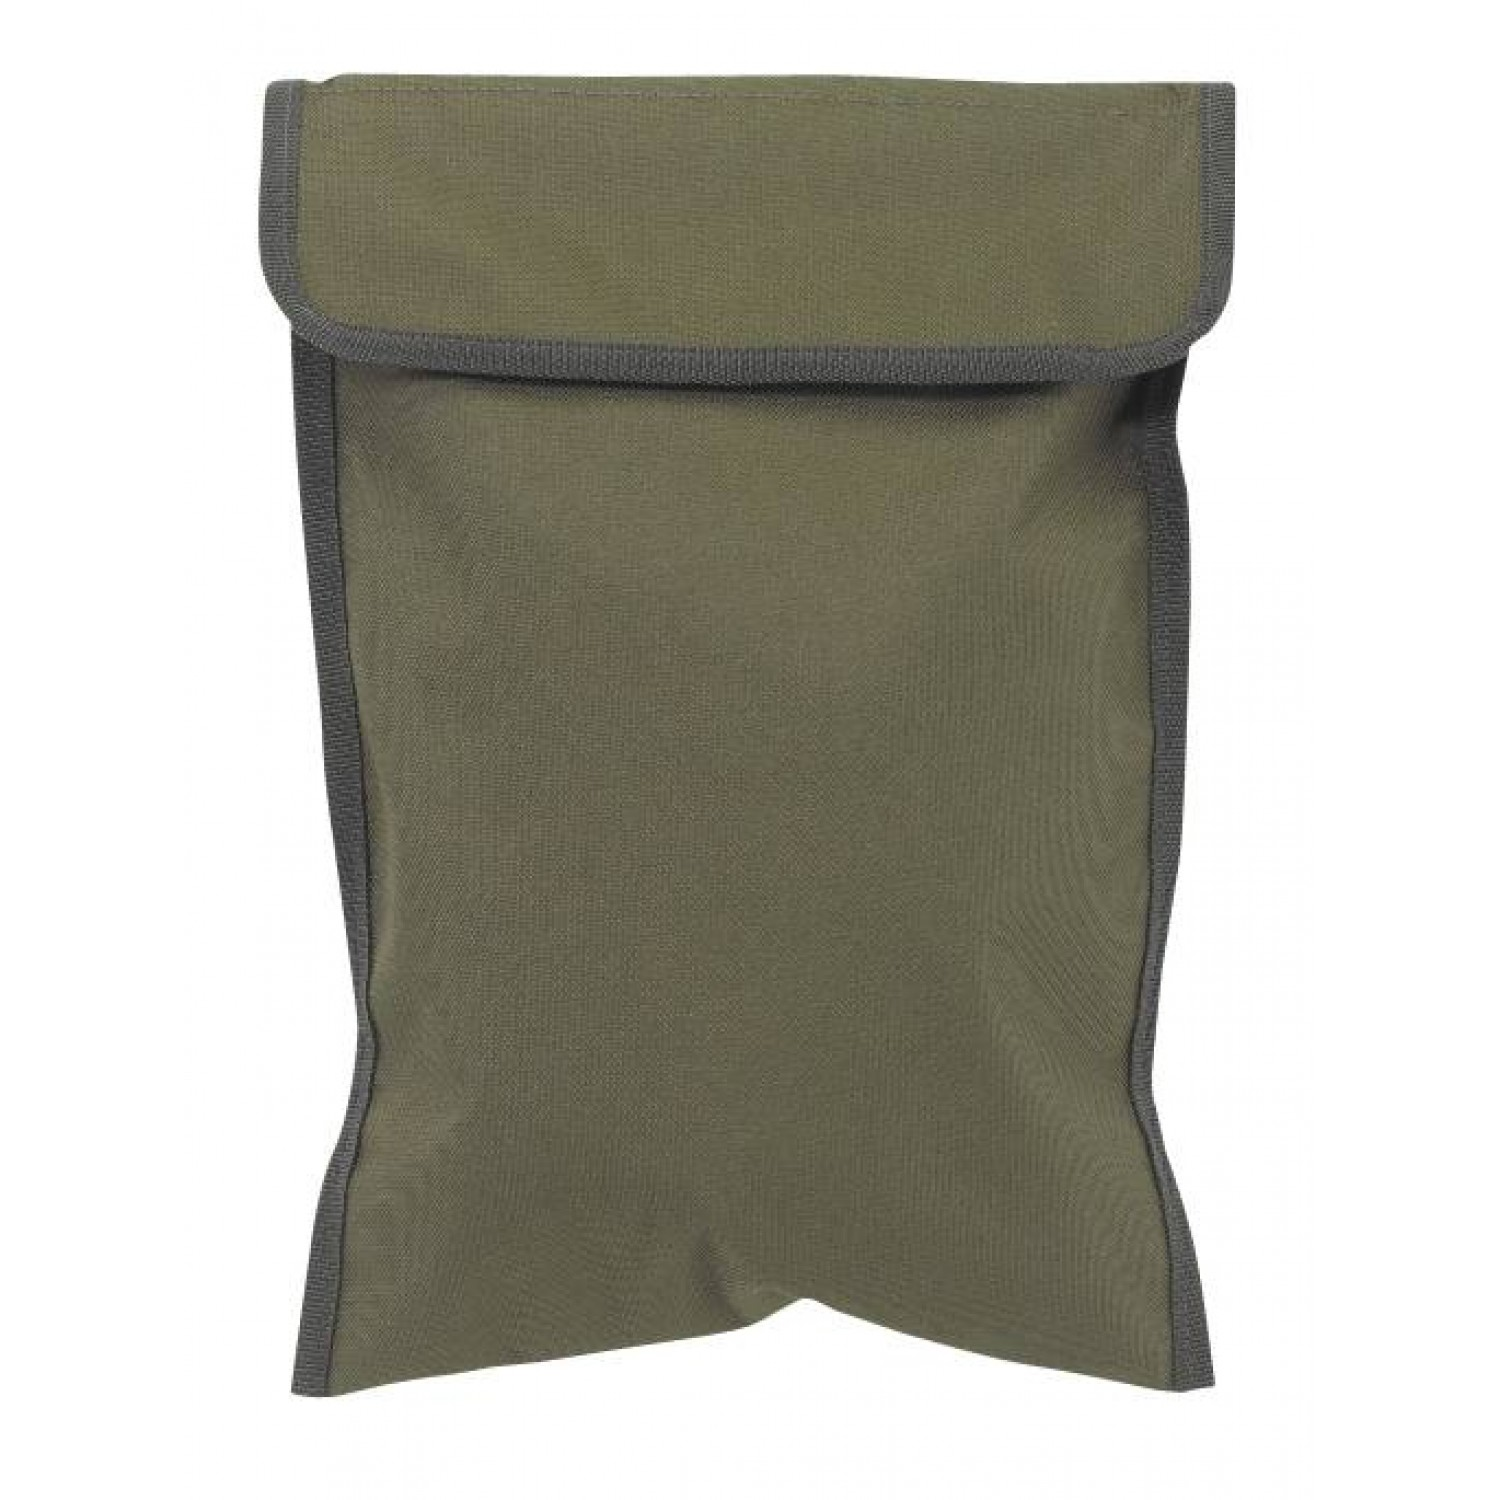 Pelzer Executive Carp Sack, 120 x 90m